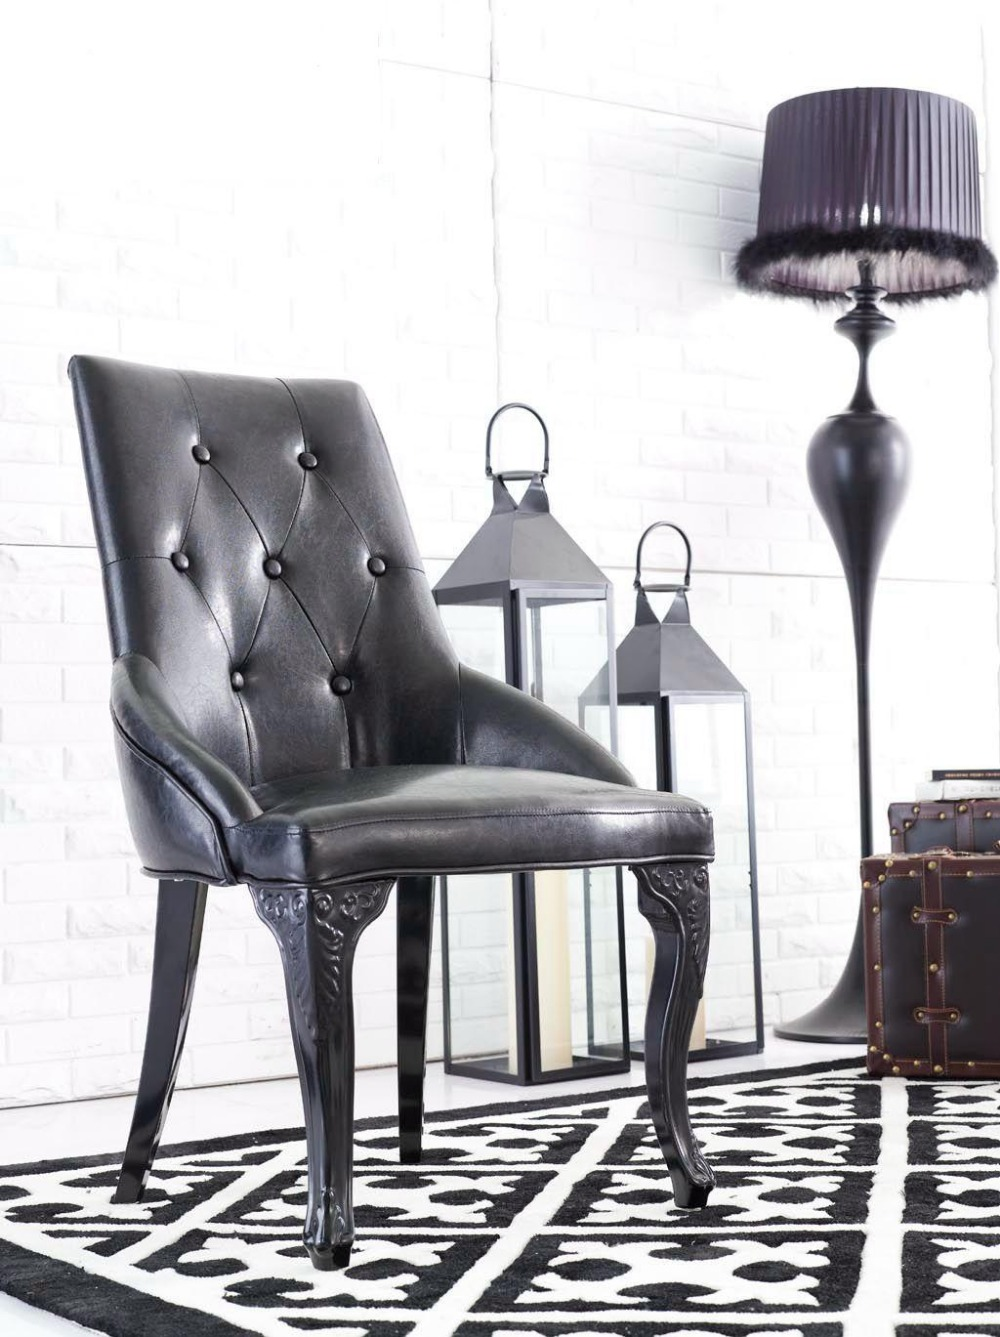 metal furniture european style neo classical hotel living 11790 | metal furniture european style neo classical hotel living room metal dining chair high grade leather restaurant